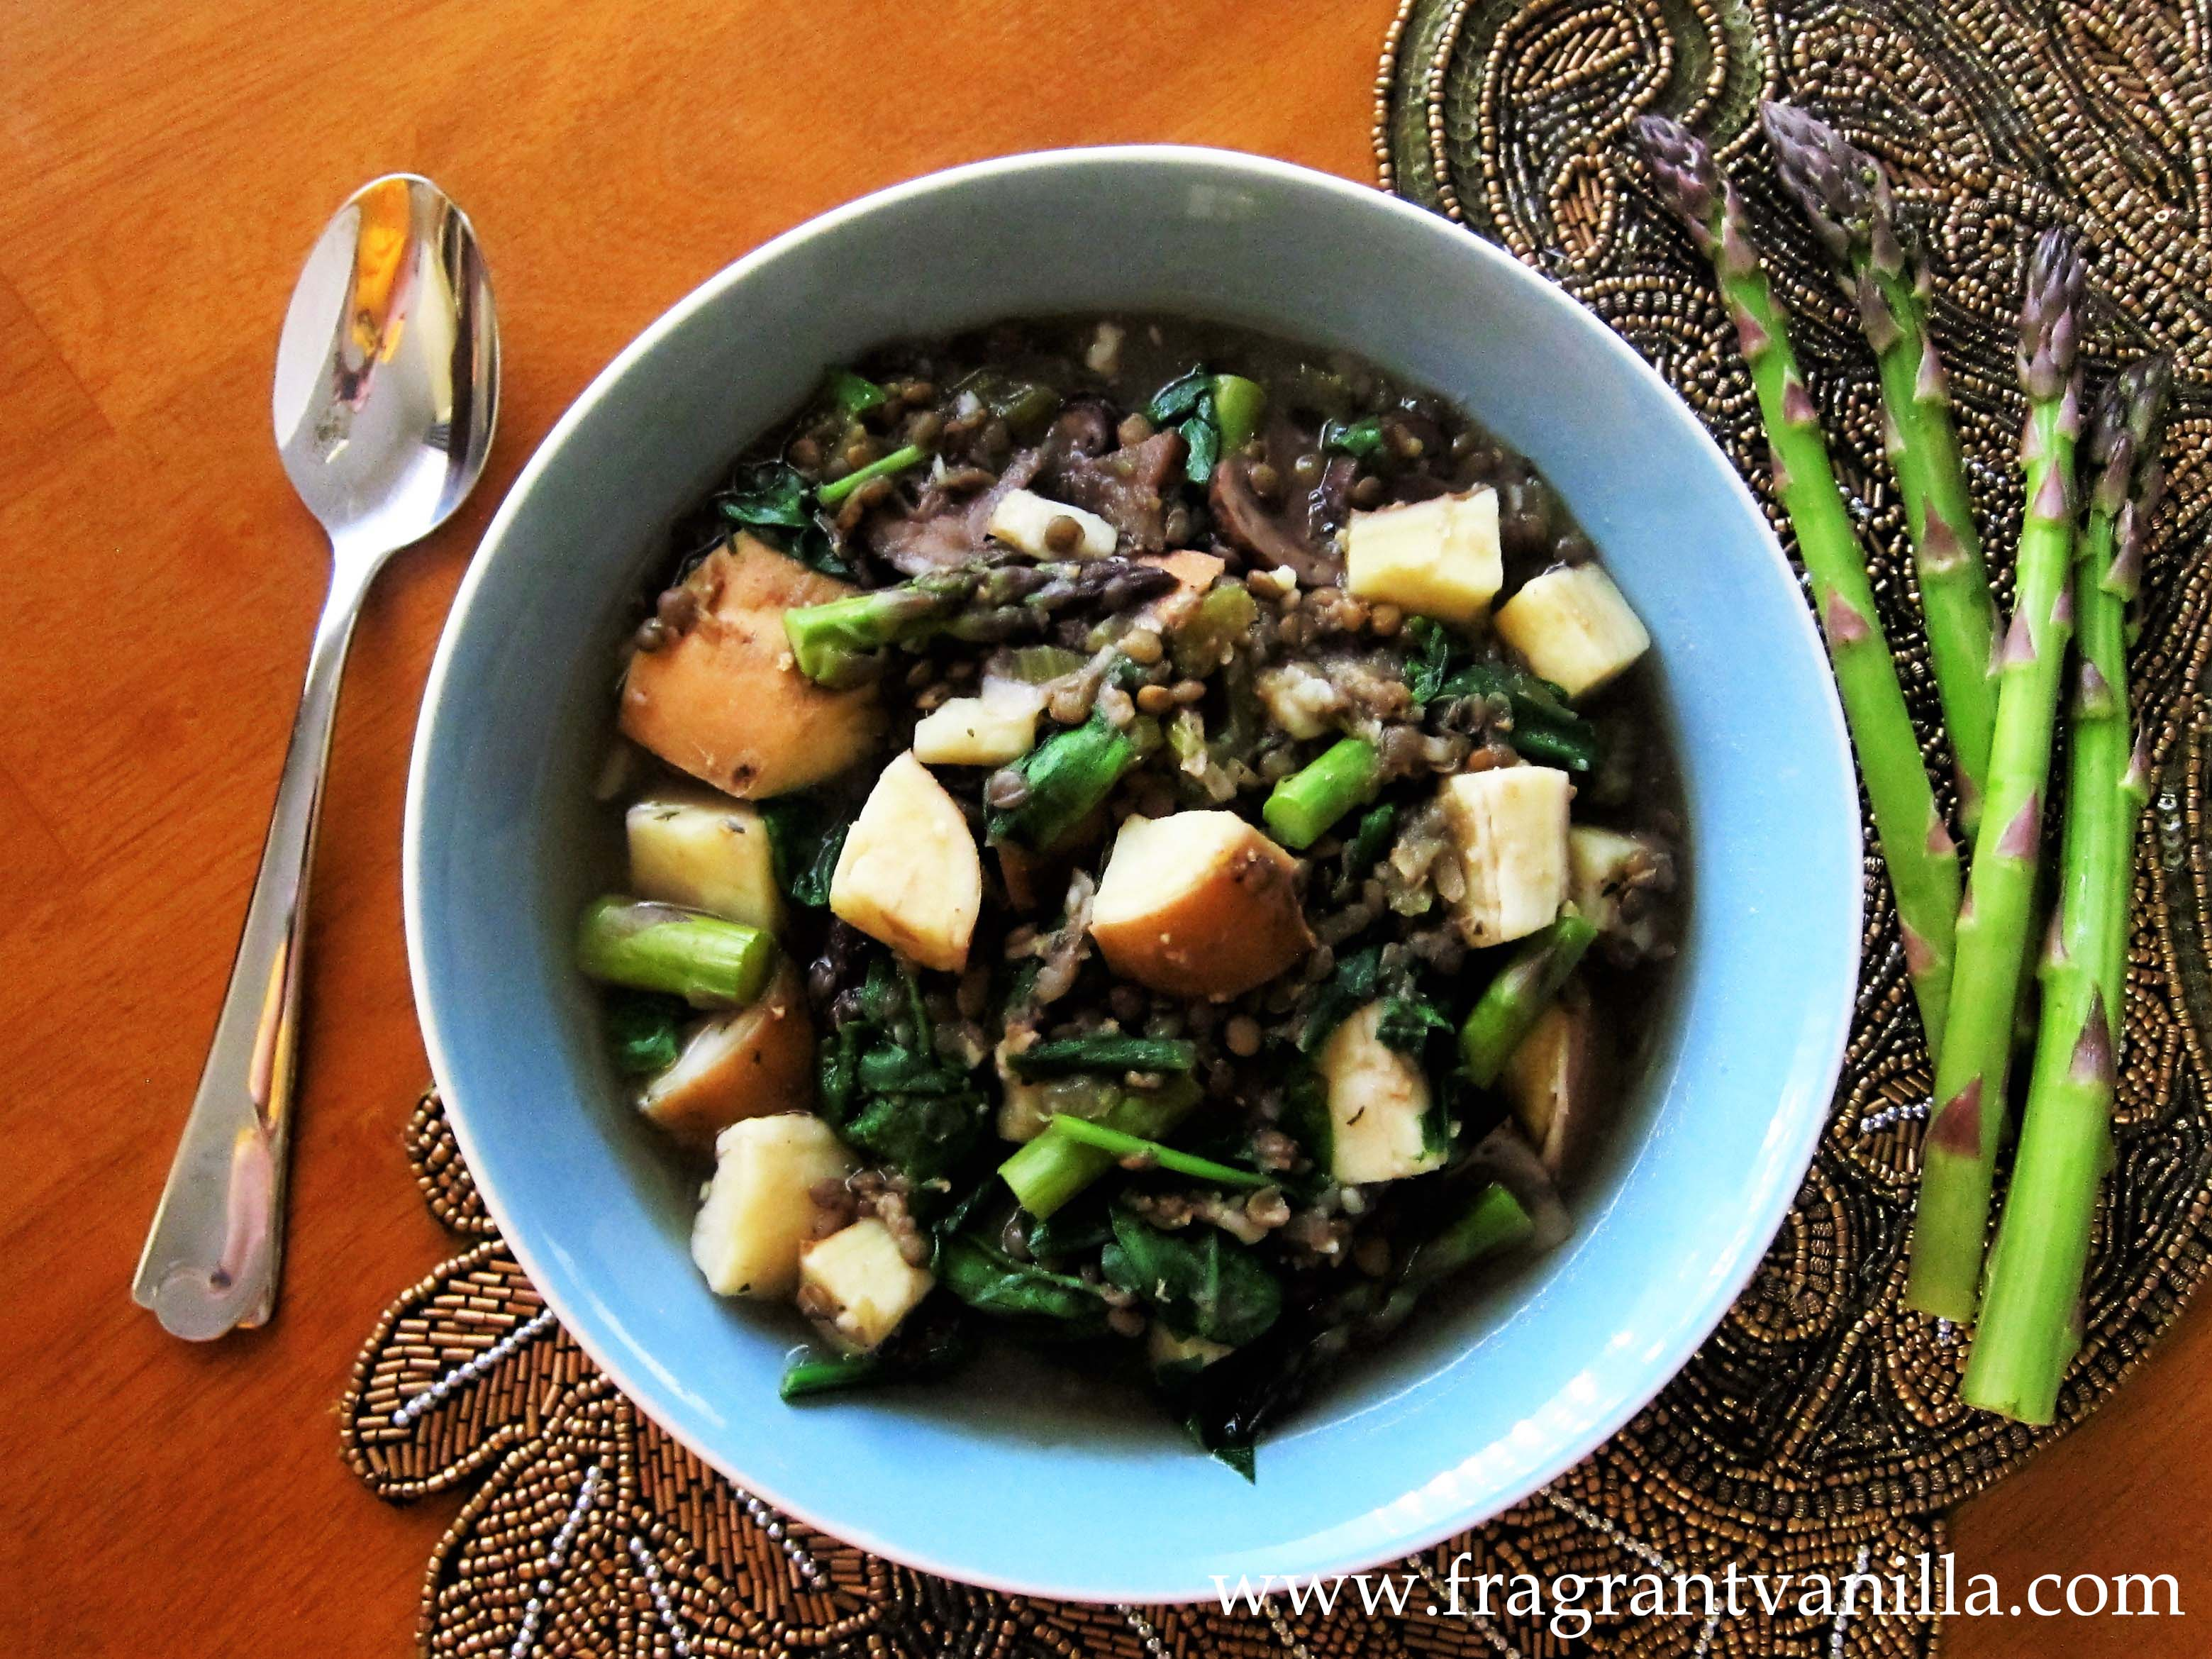 Spring Asparagus and Ramp Lentil Soup